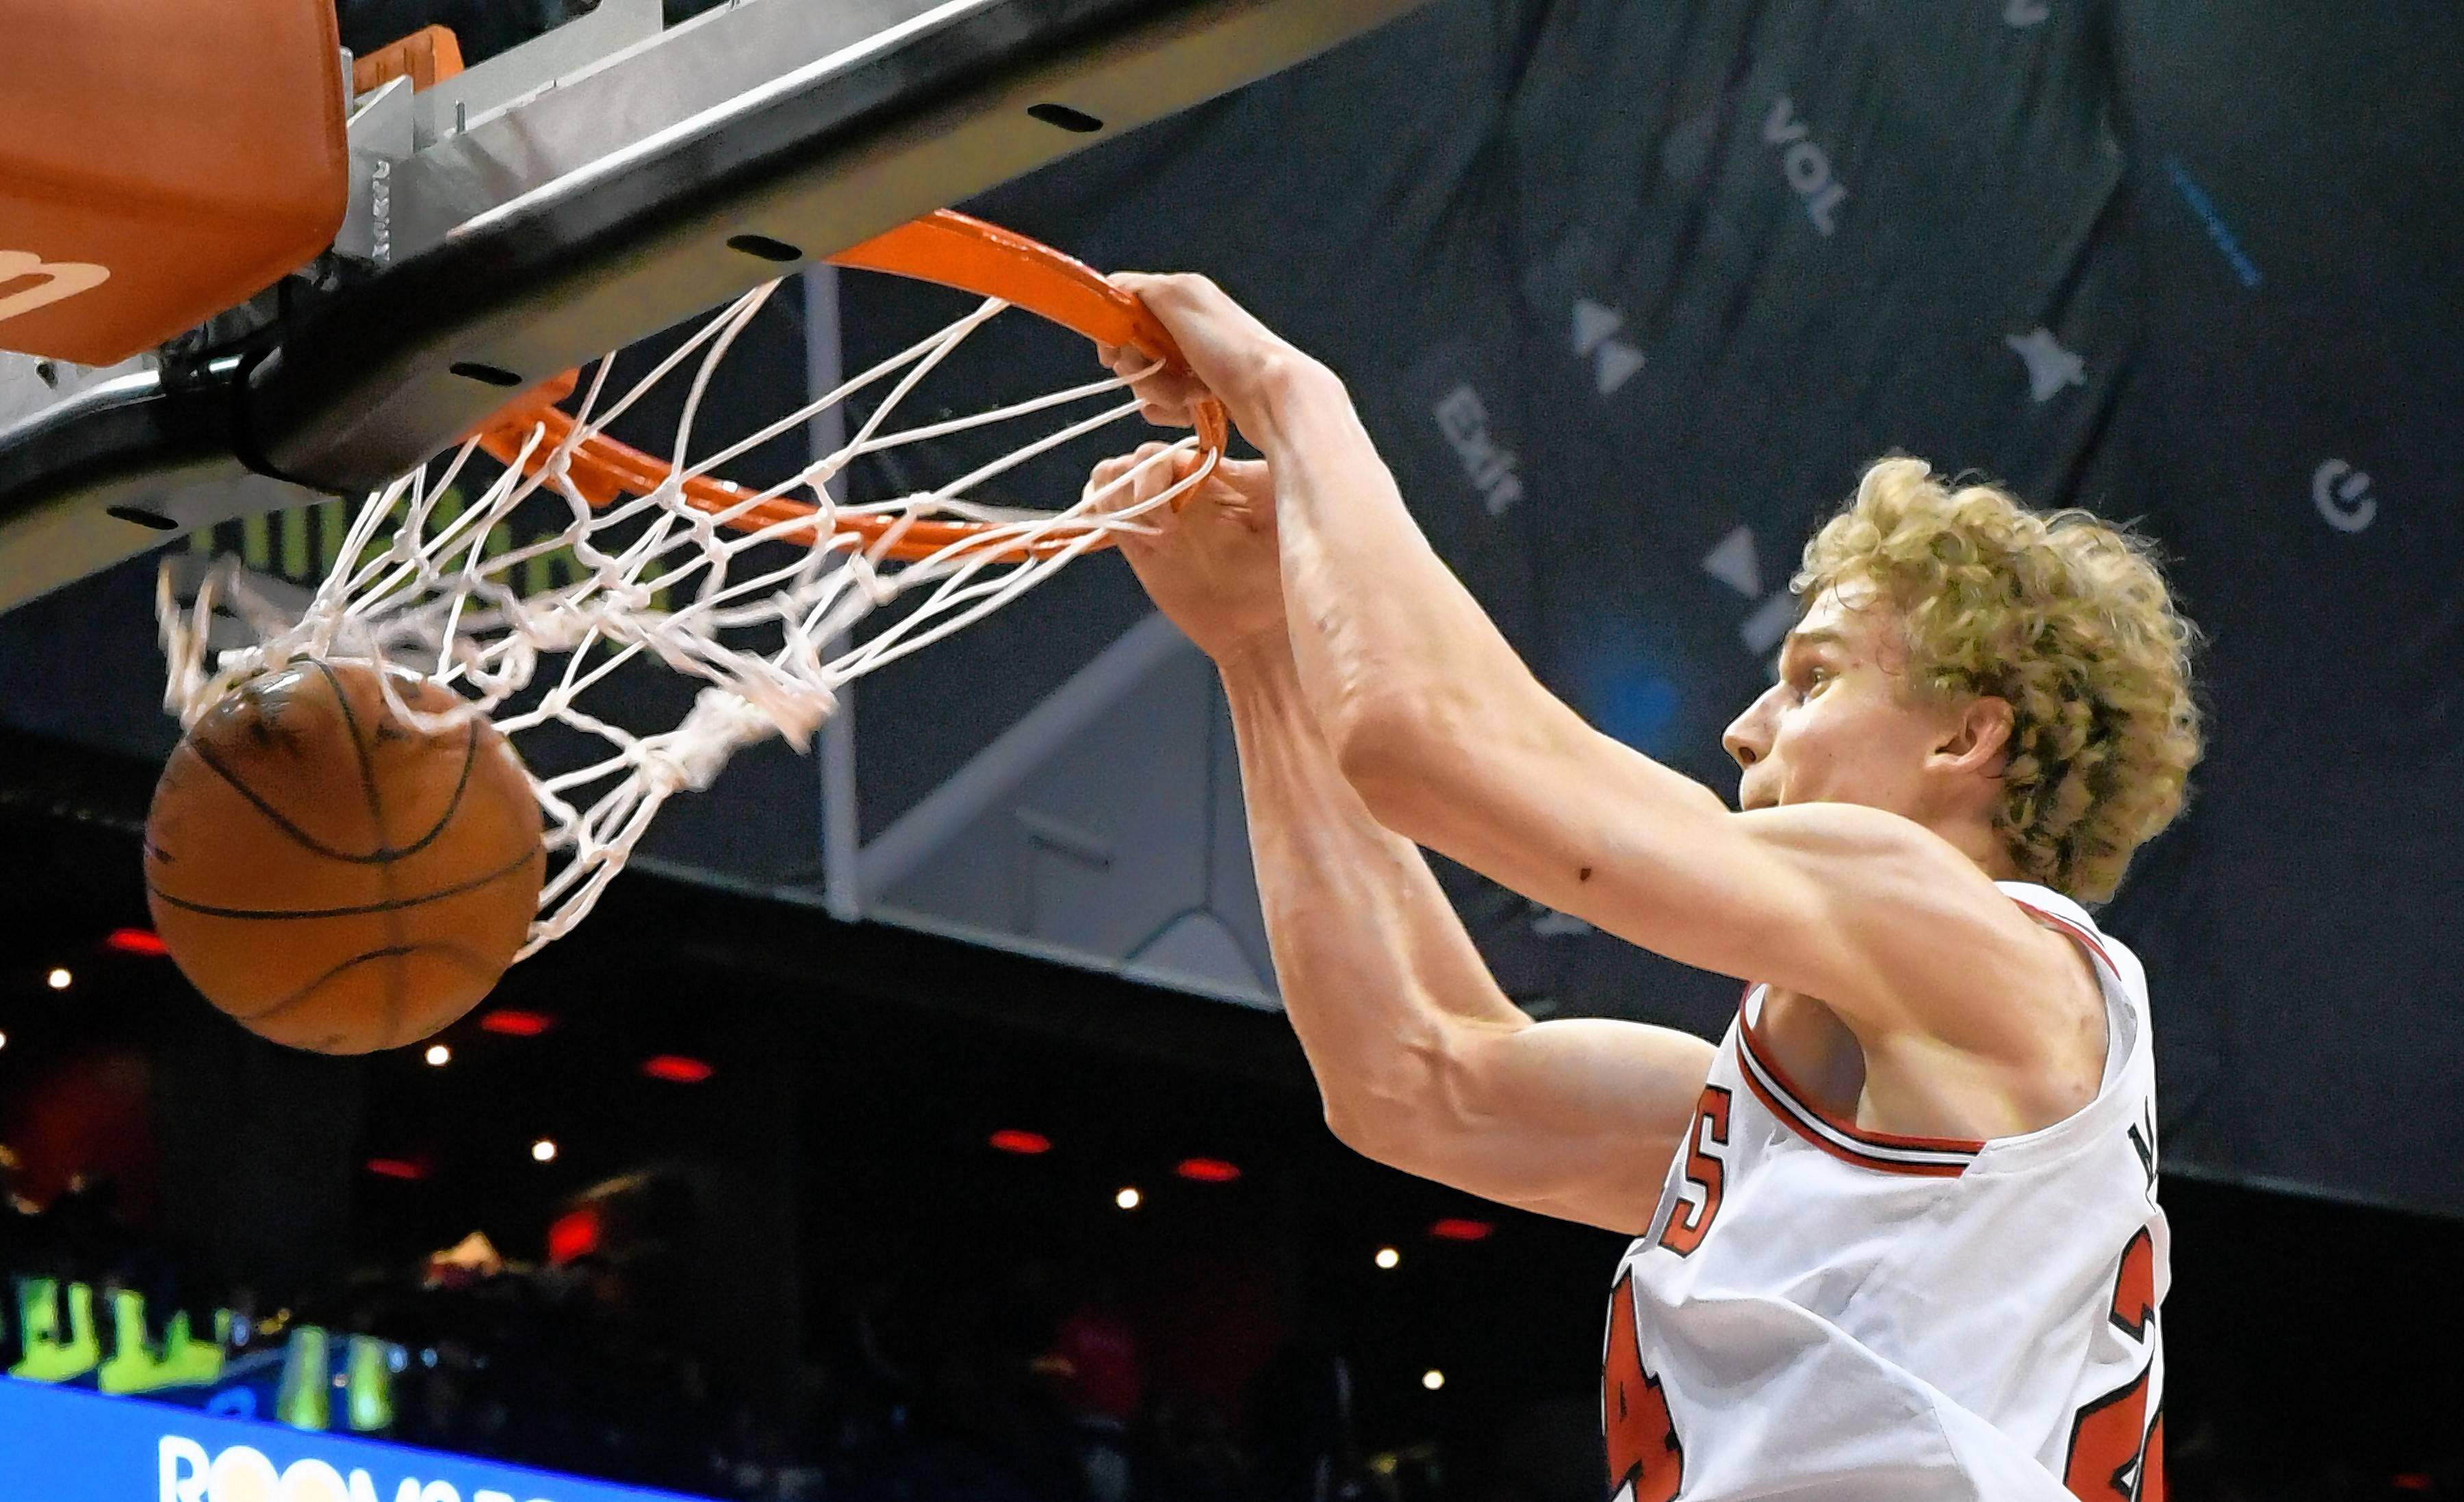 Bulls rookie Markkanen not worried about back issues